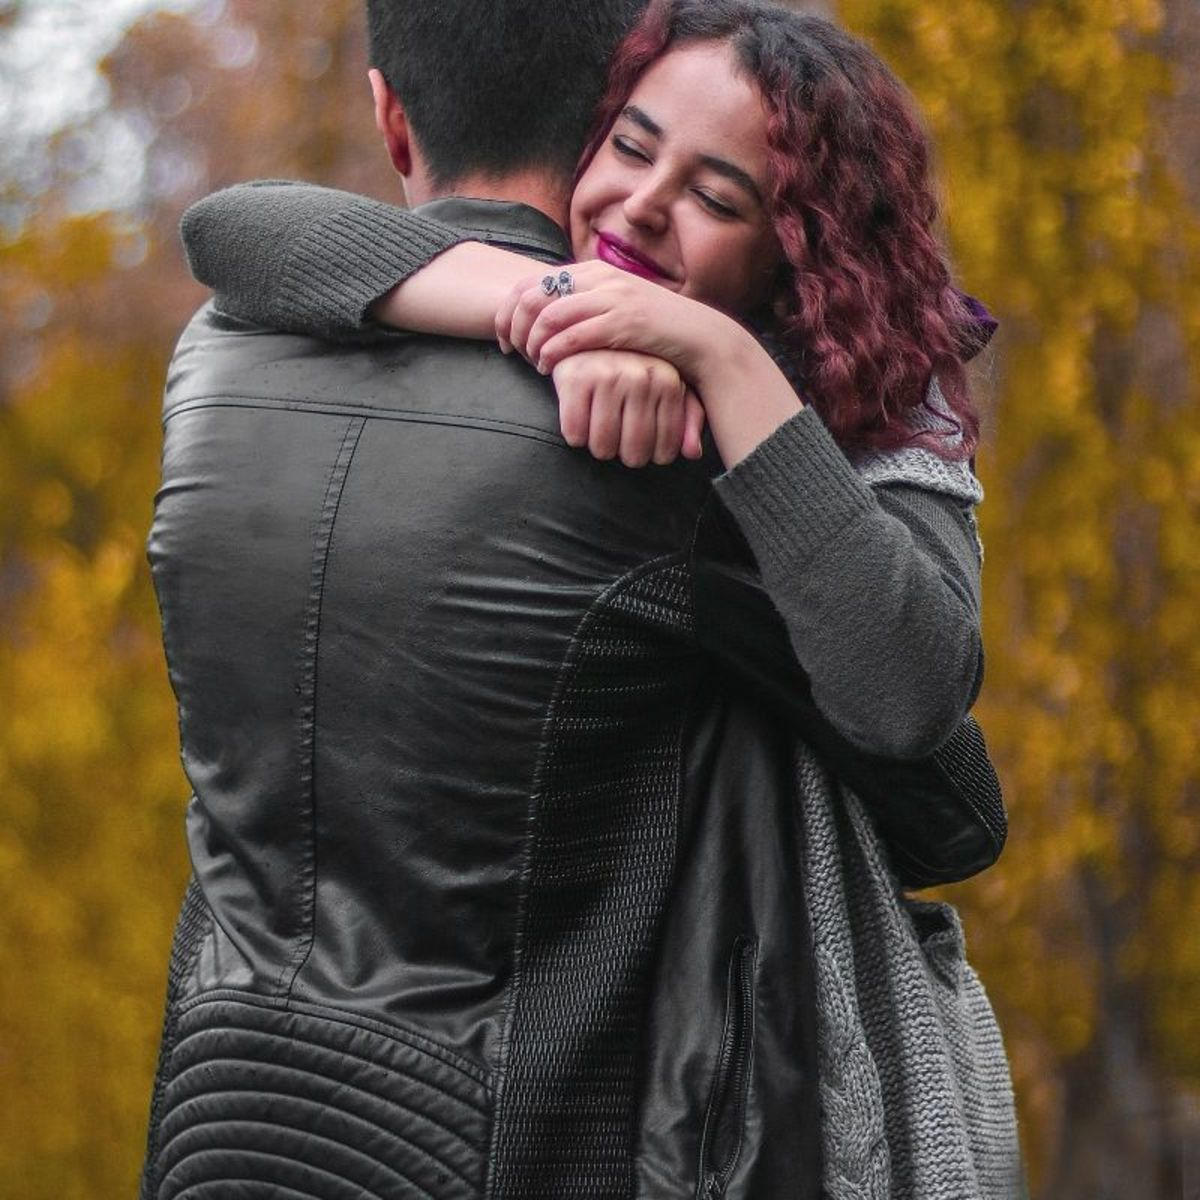 If you remain confident as you approach the girl you're hugging, she will be relaxed, and the situation won't be awkward.